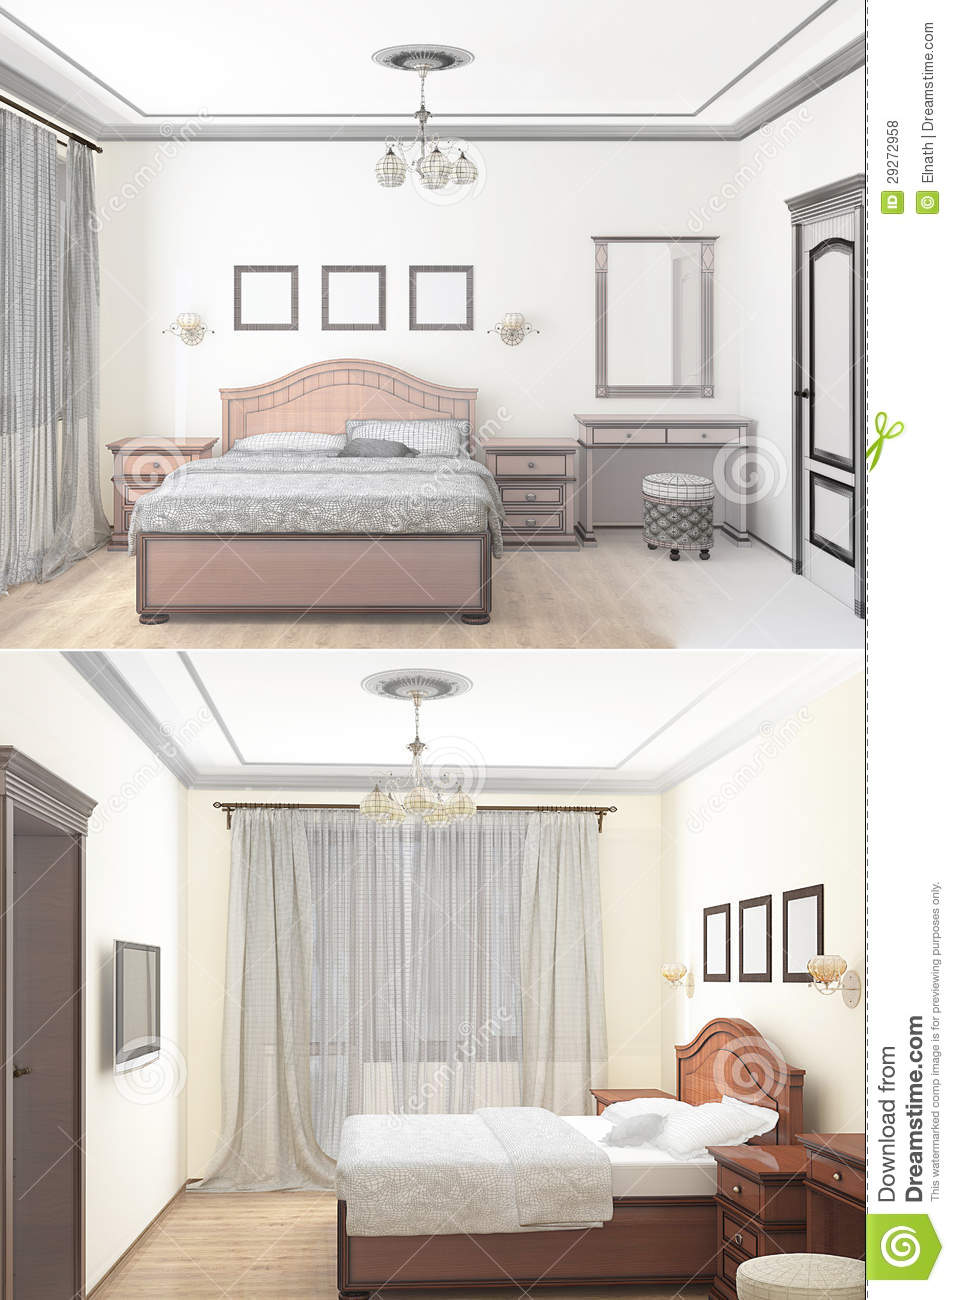 Bedroom Drawing: 3D Sketch Of An Interior Bedroom Stock Illustration